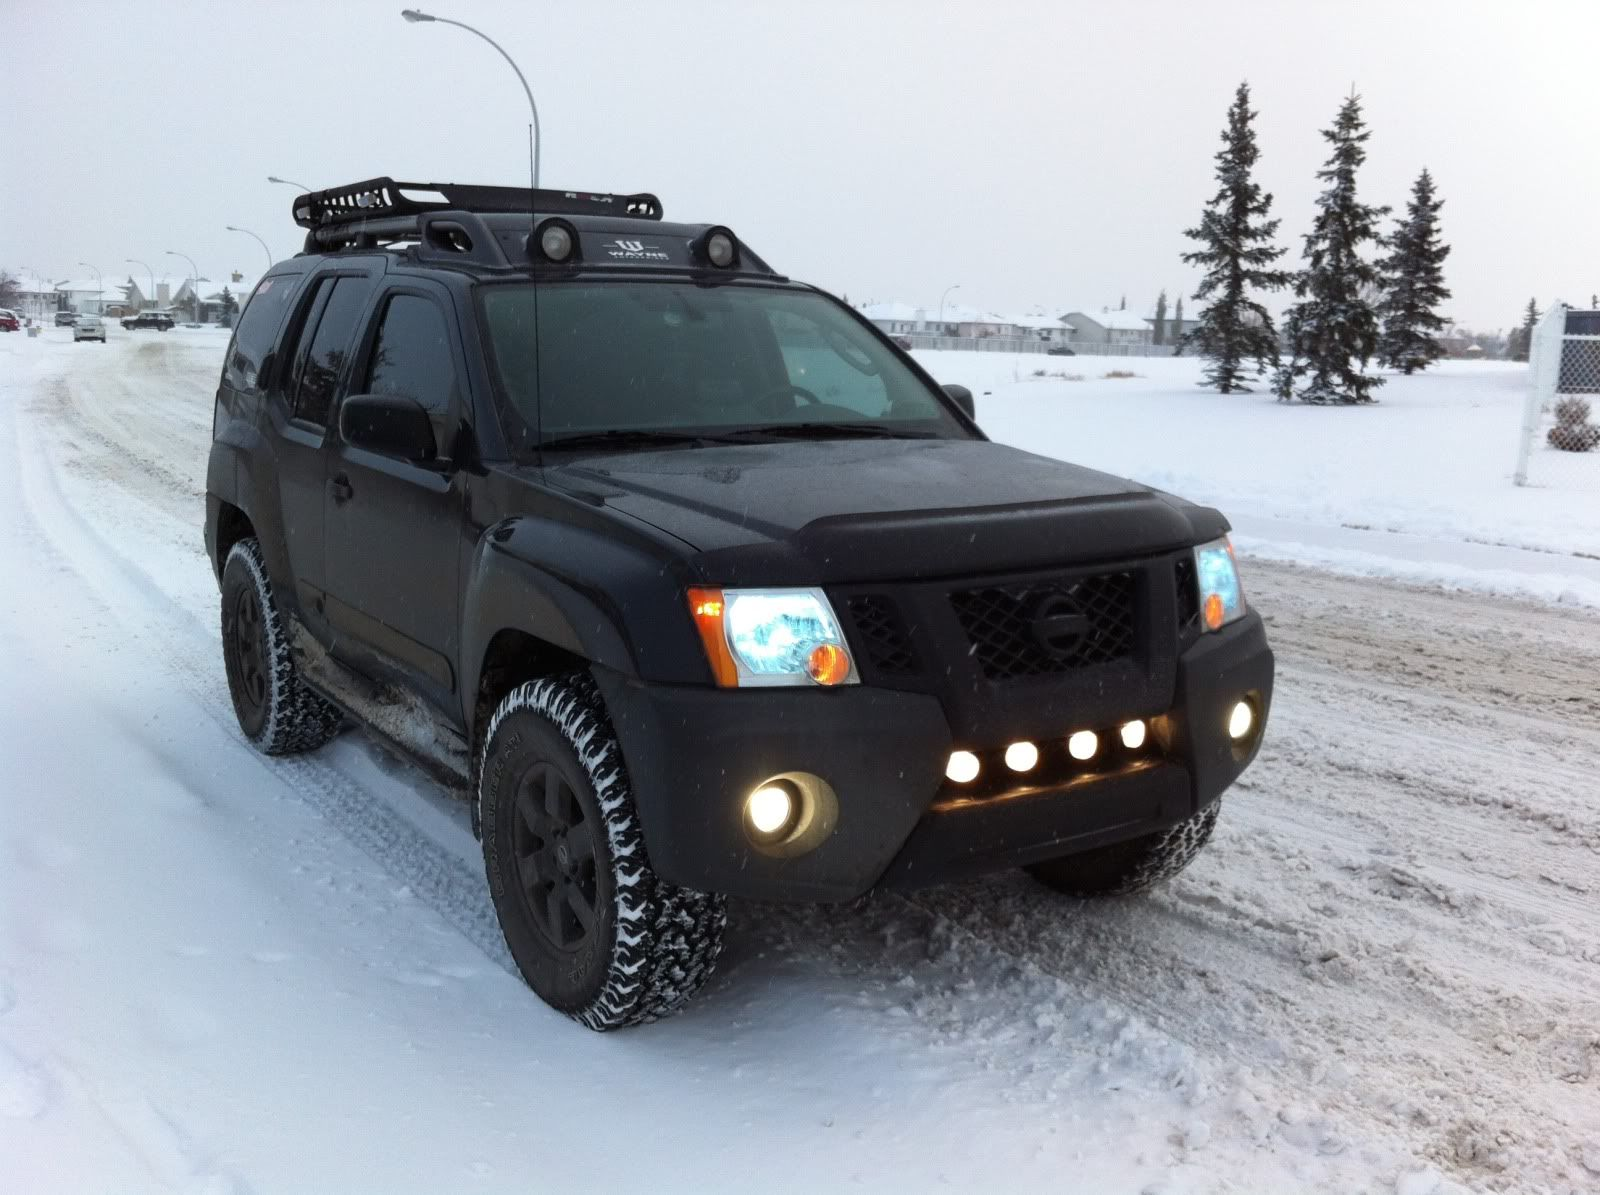 5a3142b112b23564813b7aa7d352e1a8 86 best xterra images on pinterest cars, truck mods and 4x4  at edmiracle.co